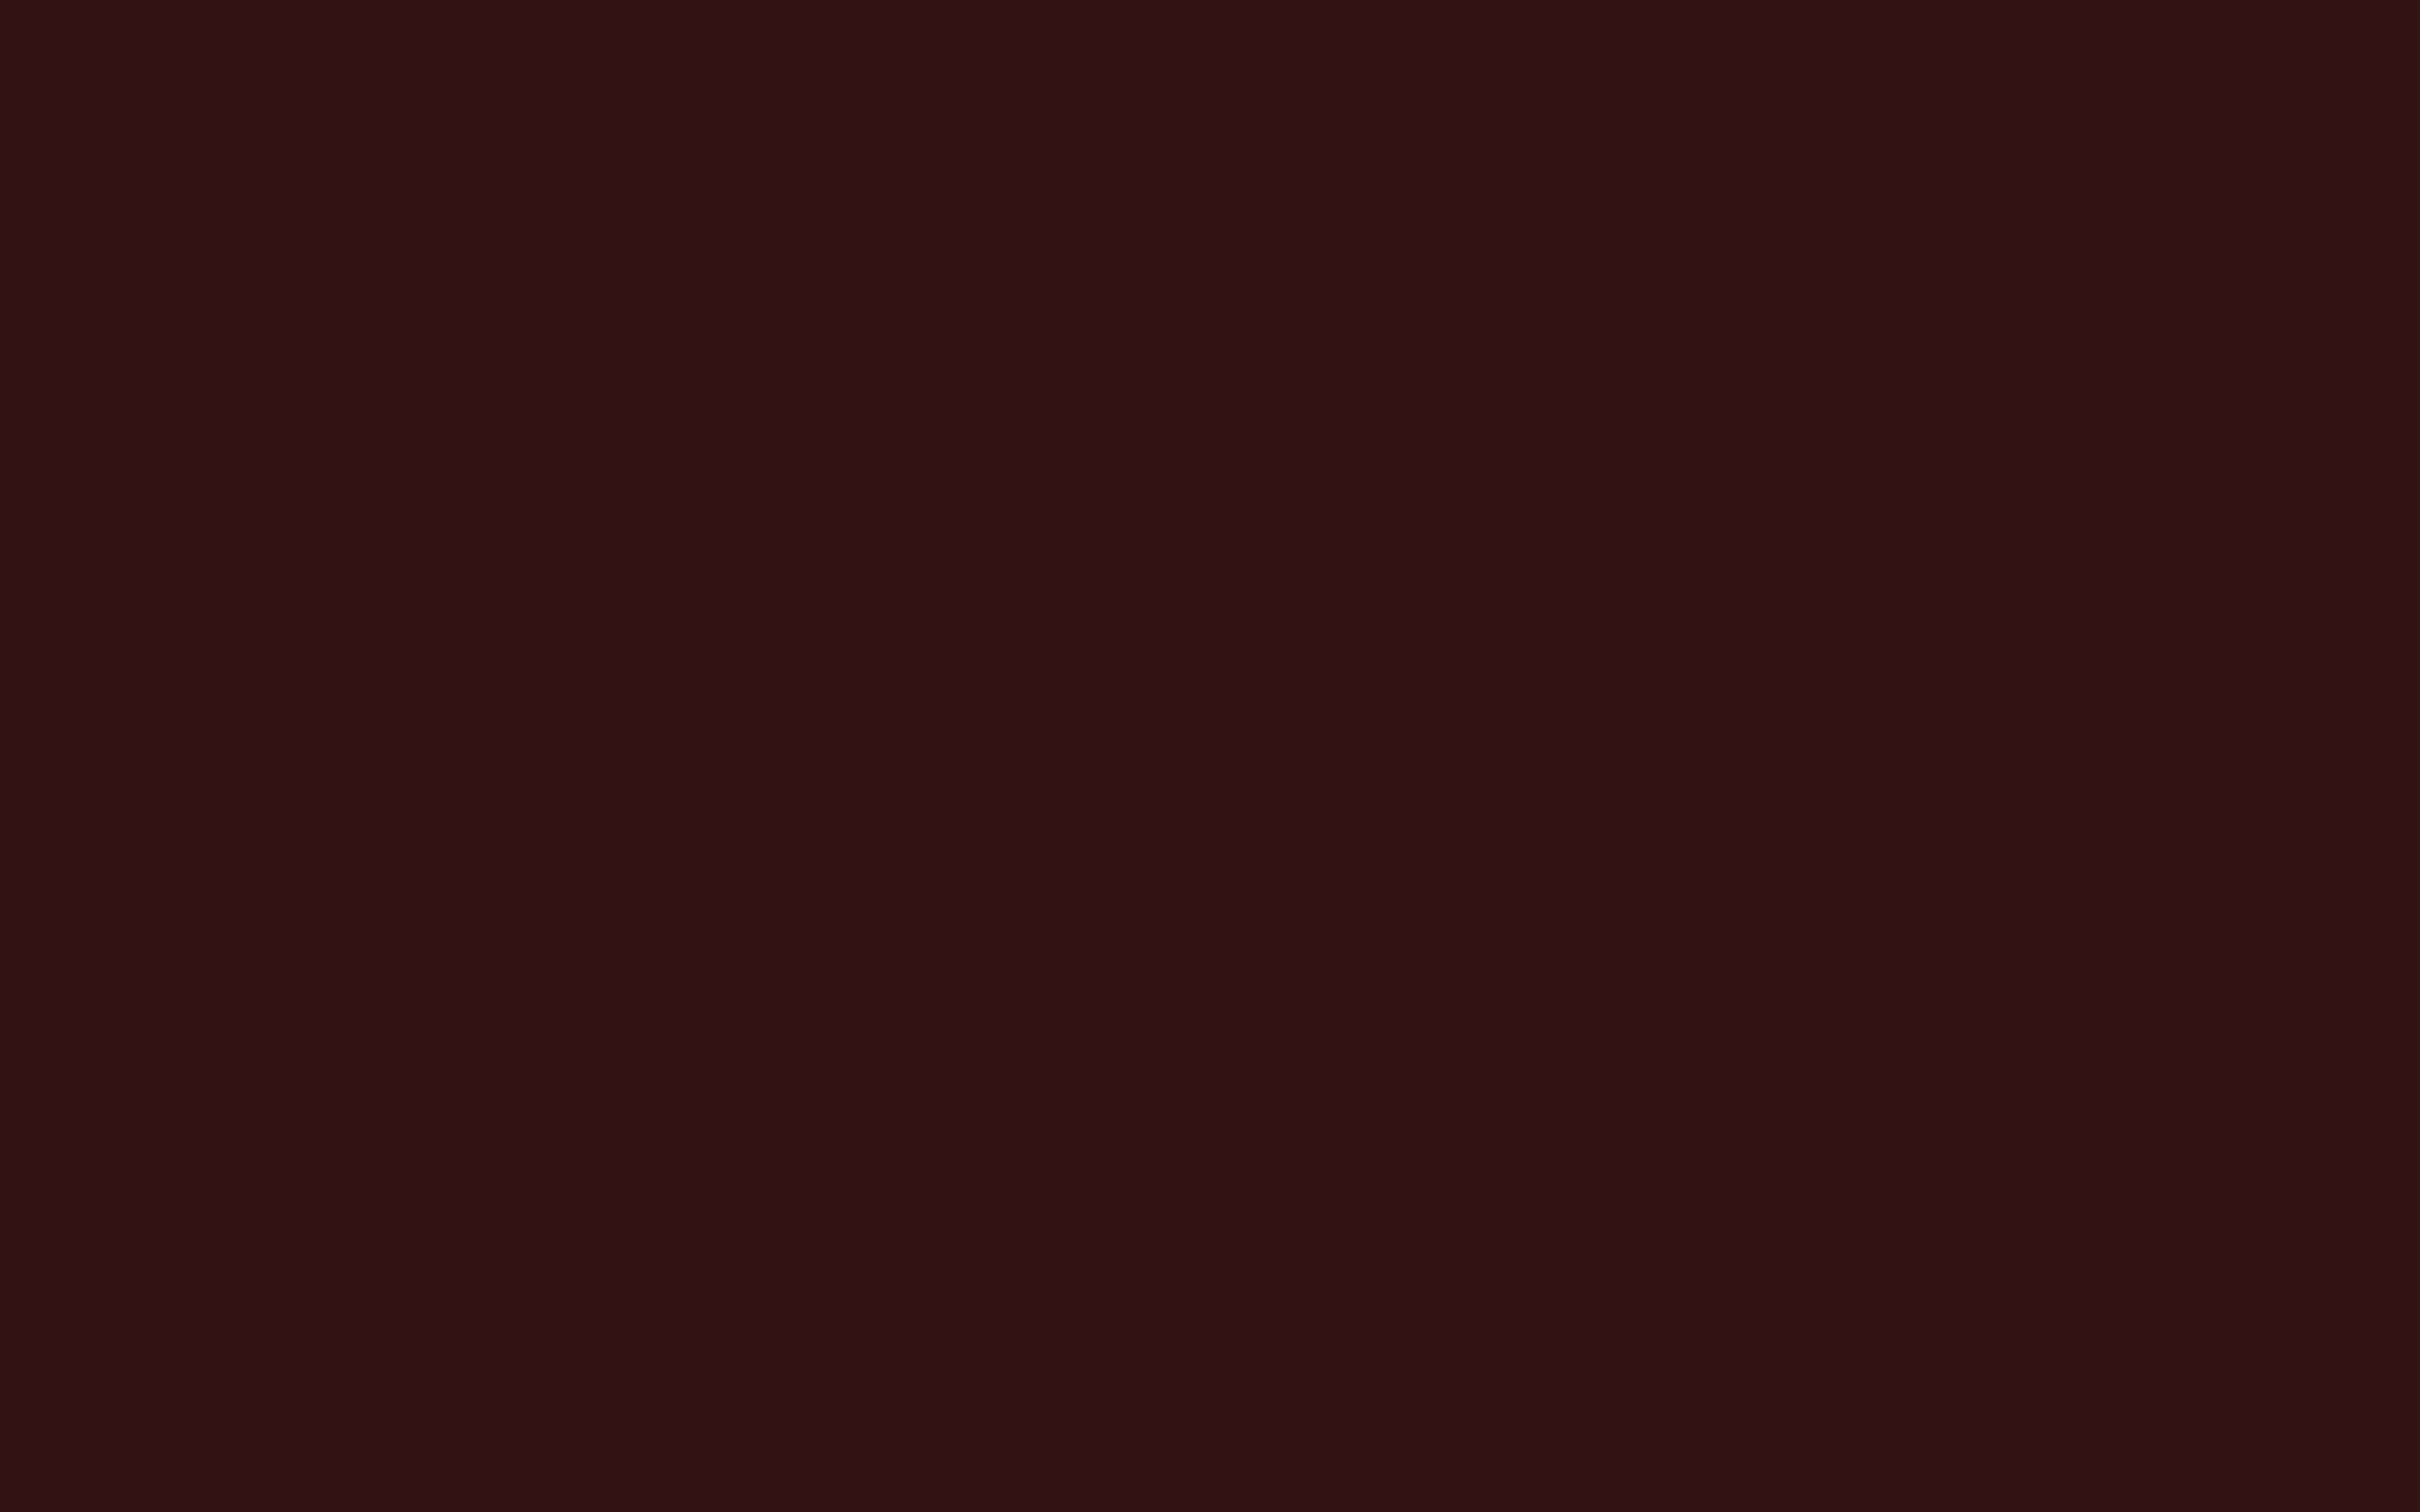 2560x1600 Seal Brown Solid Color Background